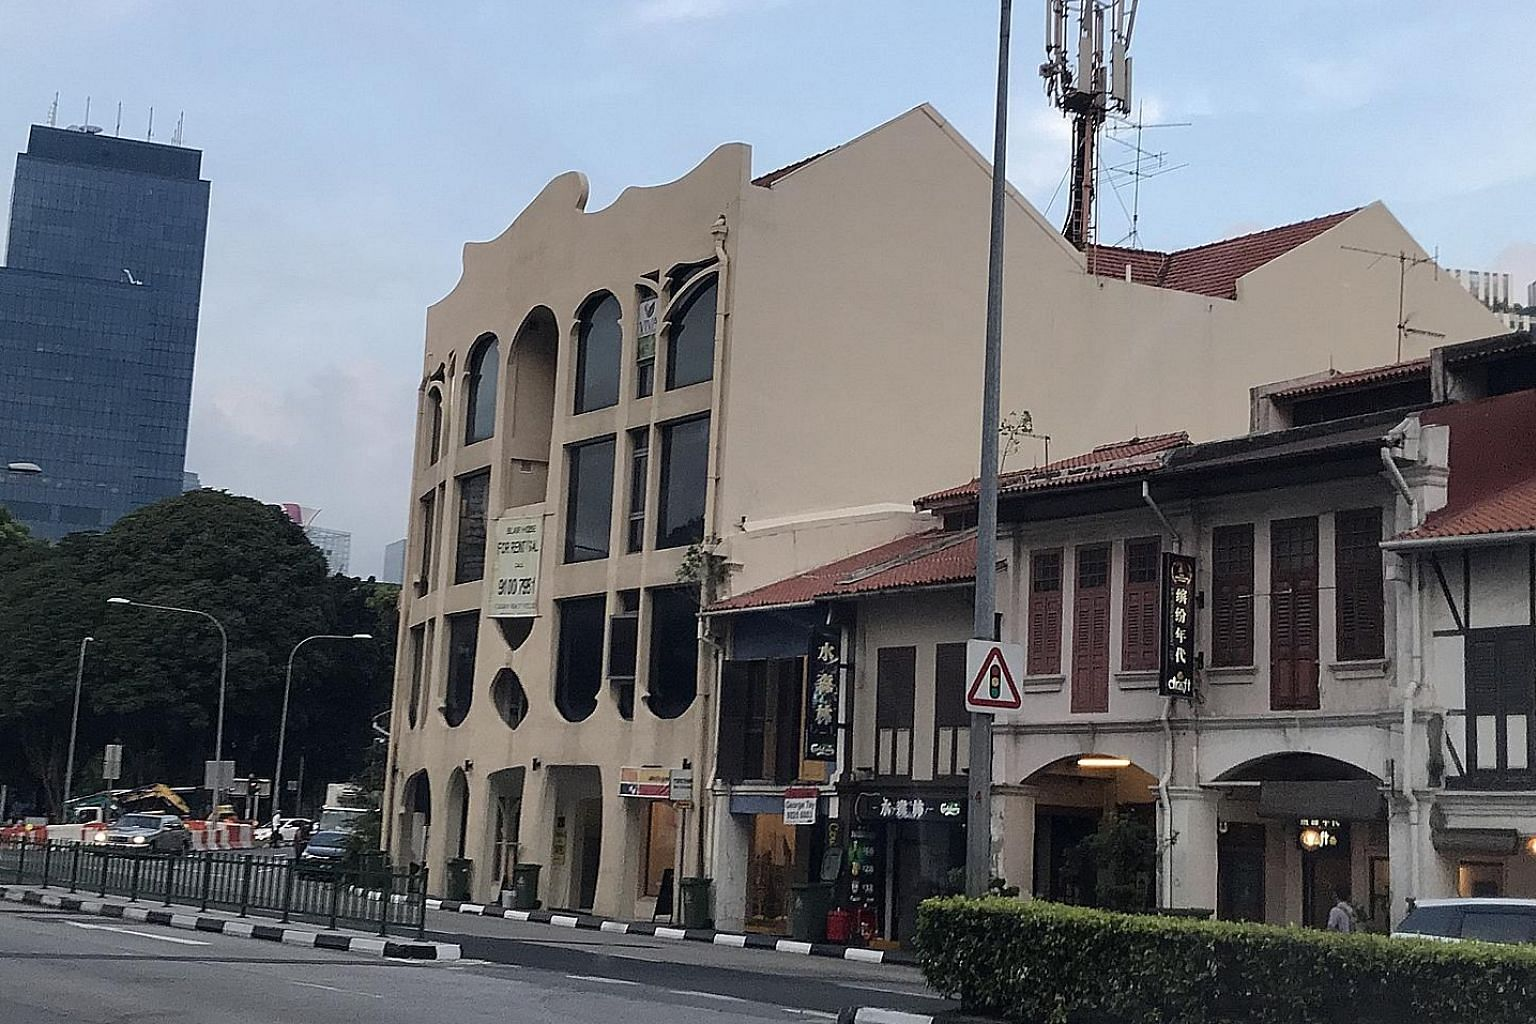 No. 13 and 15 Teo Hong Road (left) were bought by ANB Investment for close to $22 million. Separately, a four-storey freehold commercial building near the corner of Kampong Bahru Road (right) and Neil Road has been transacted for $22.58 million. The